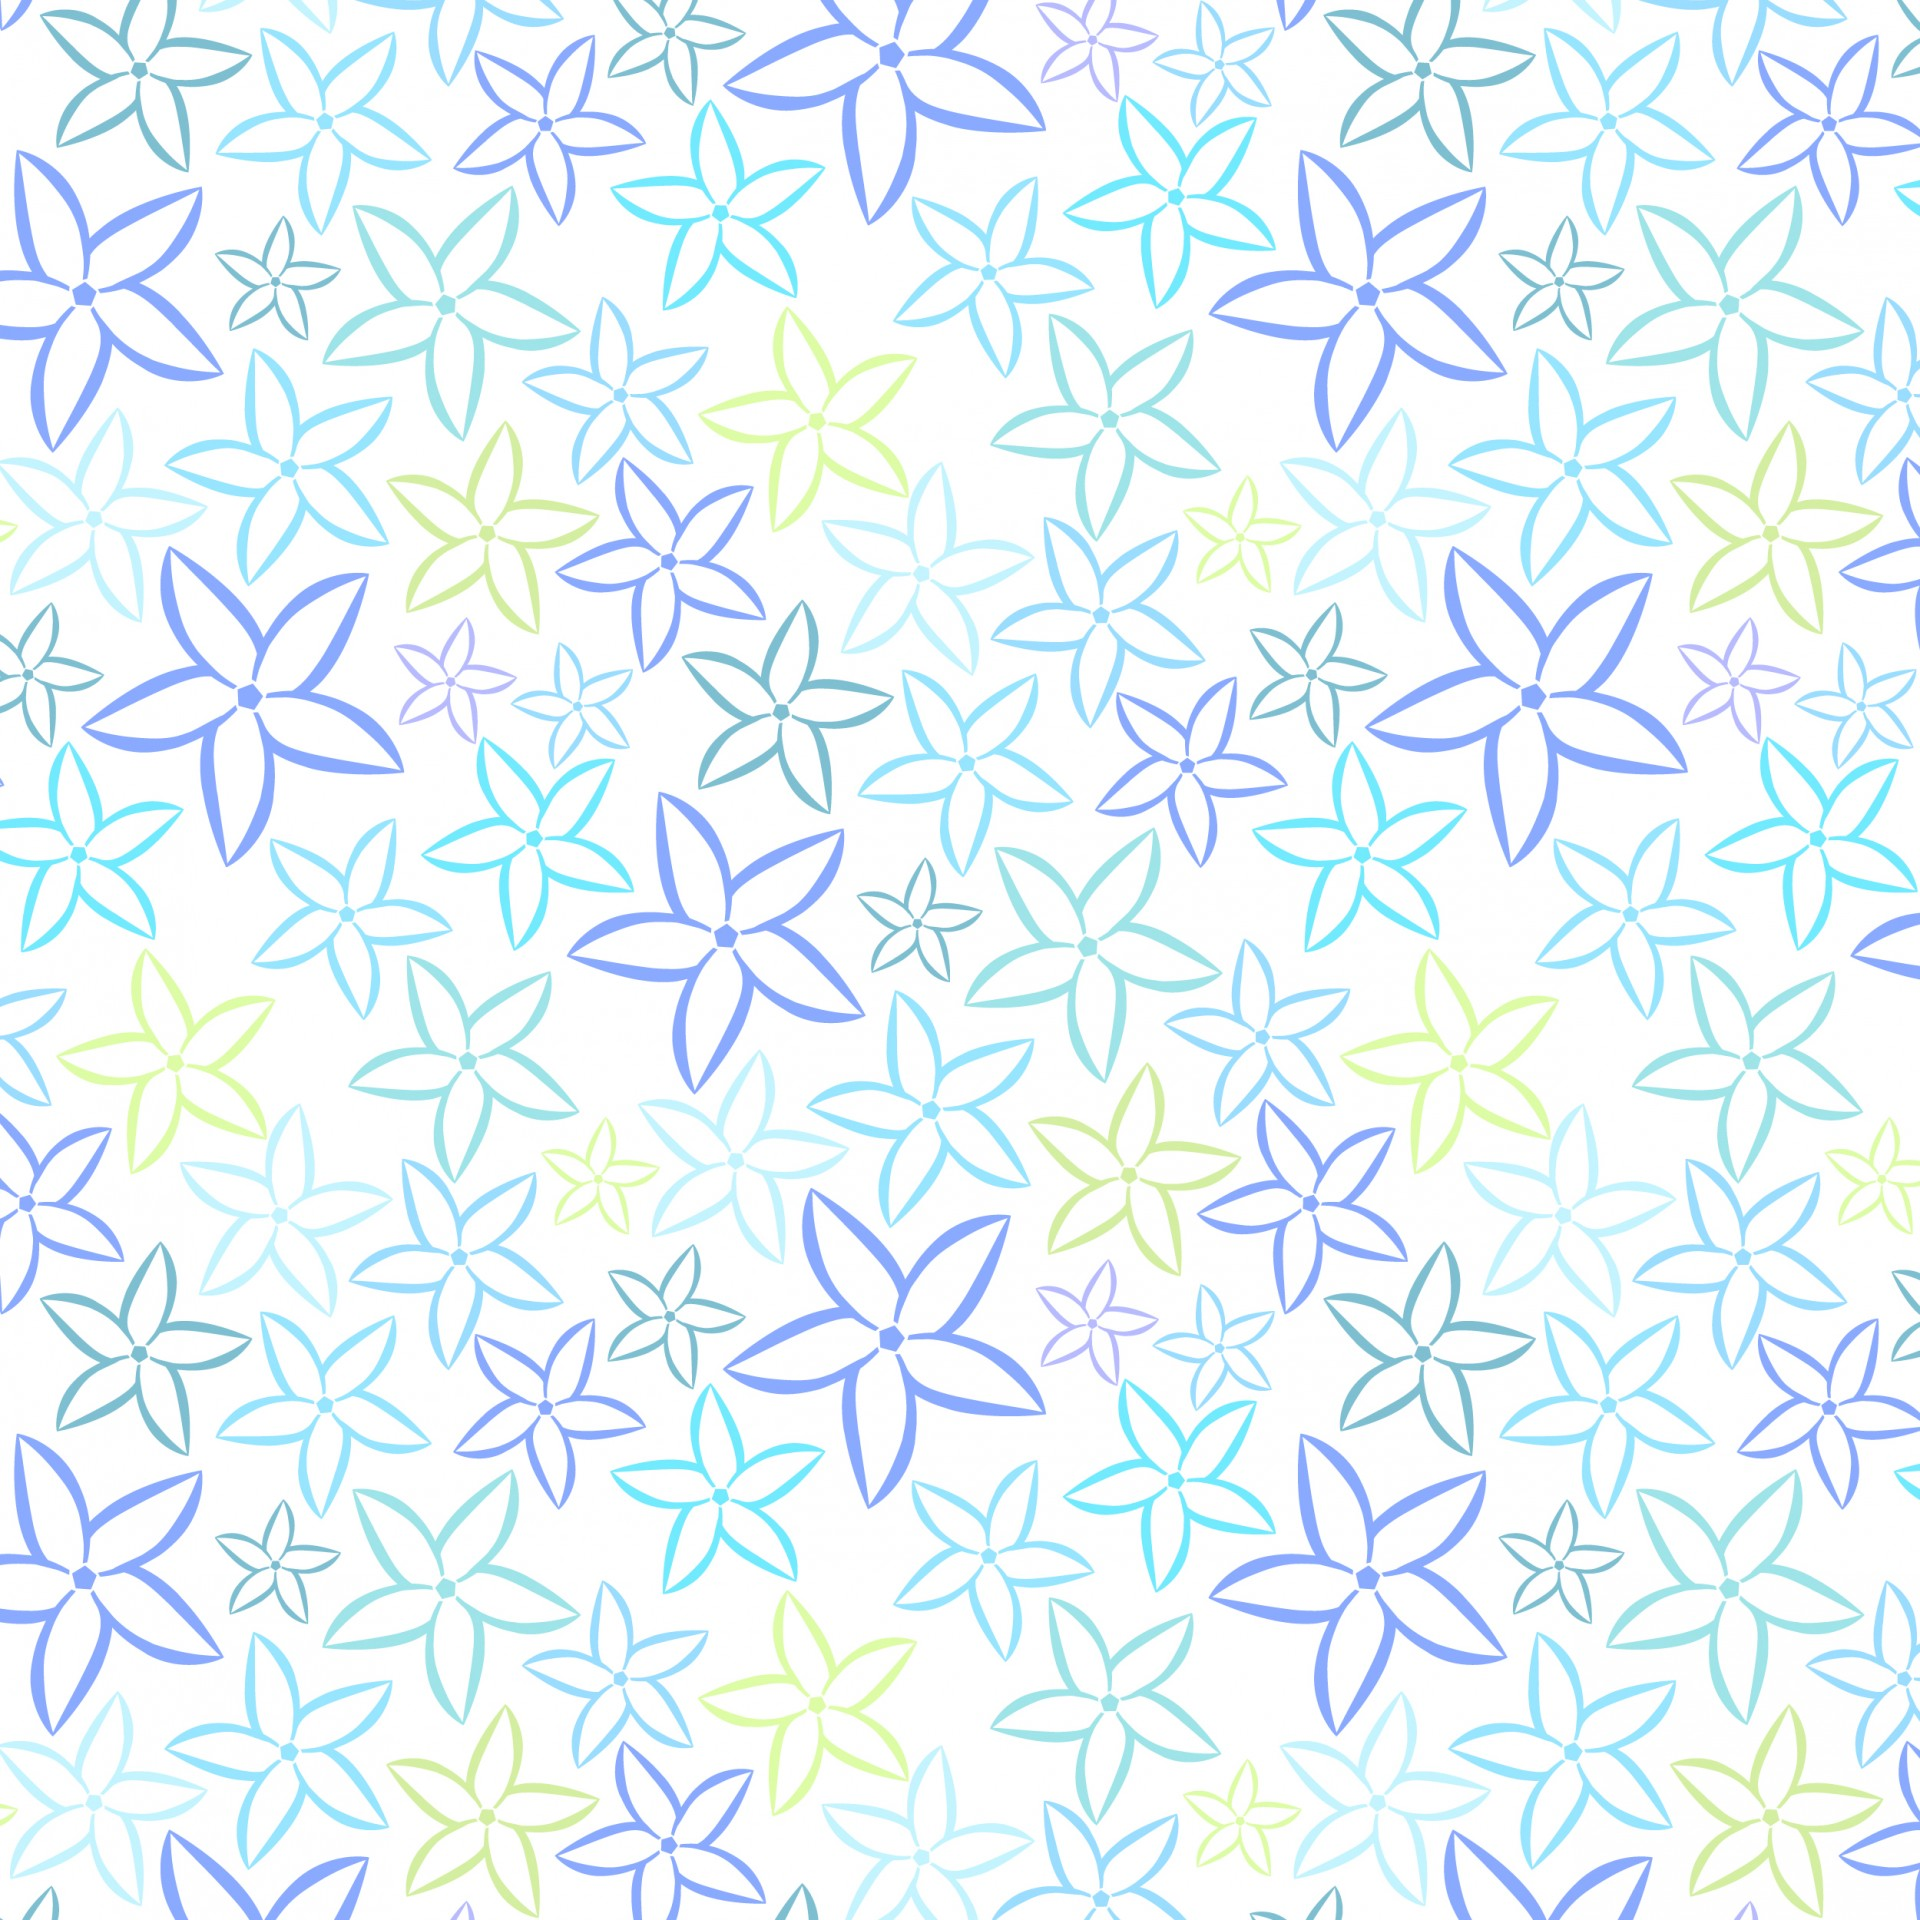 small-flowers-pattern-14417806342ix